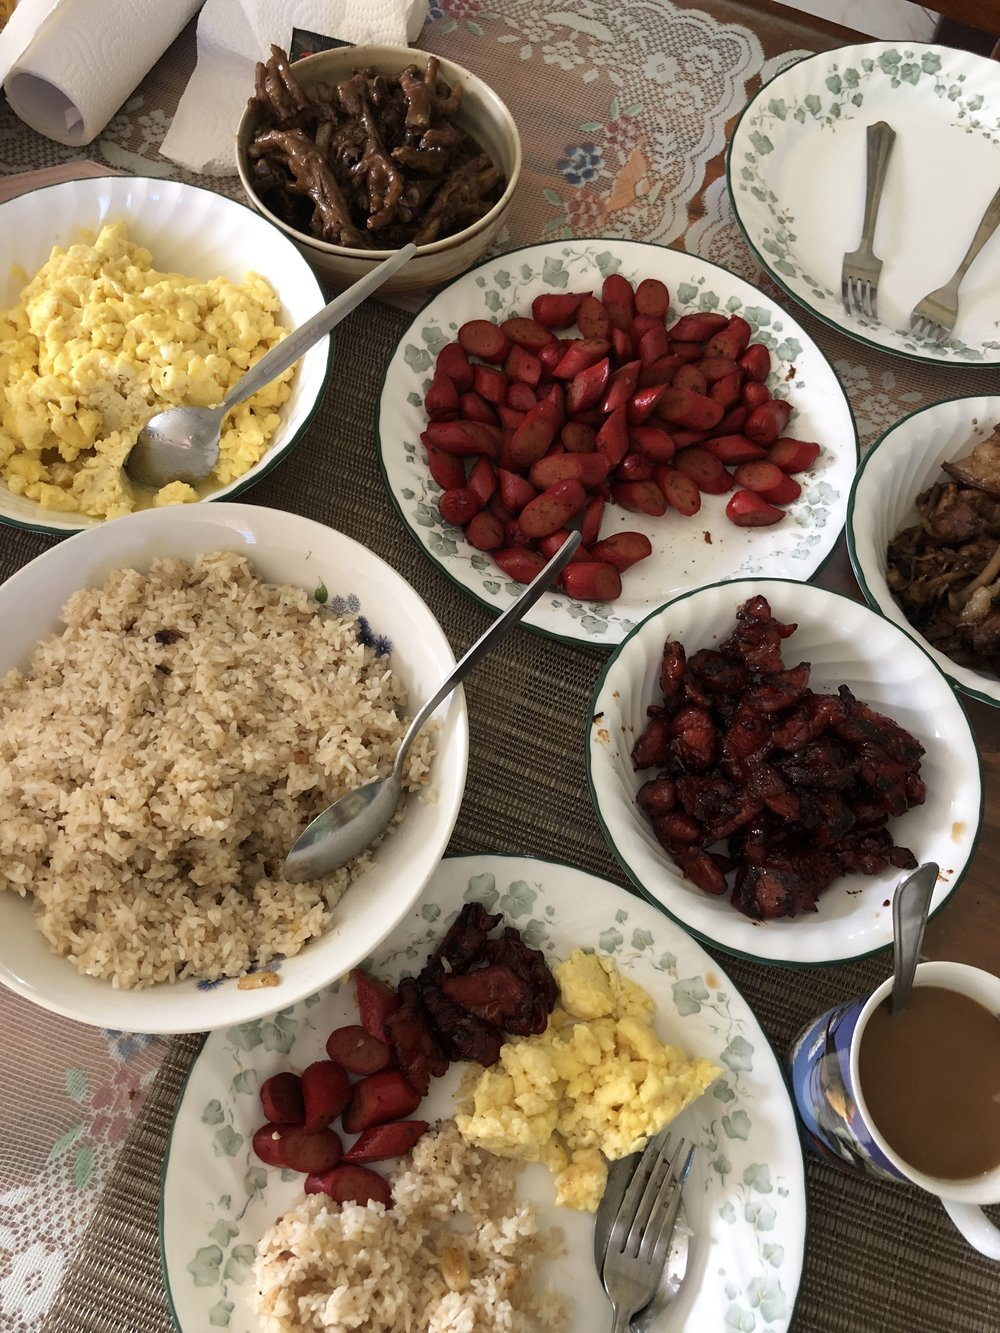 Taken in Candelaria, Zambales, Filipino breakfast / Provided by Nick Pelonia